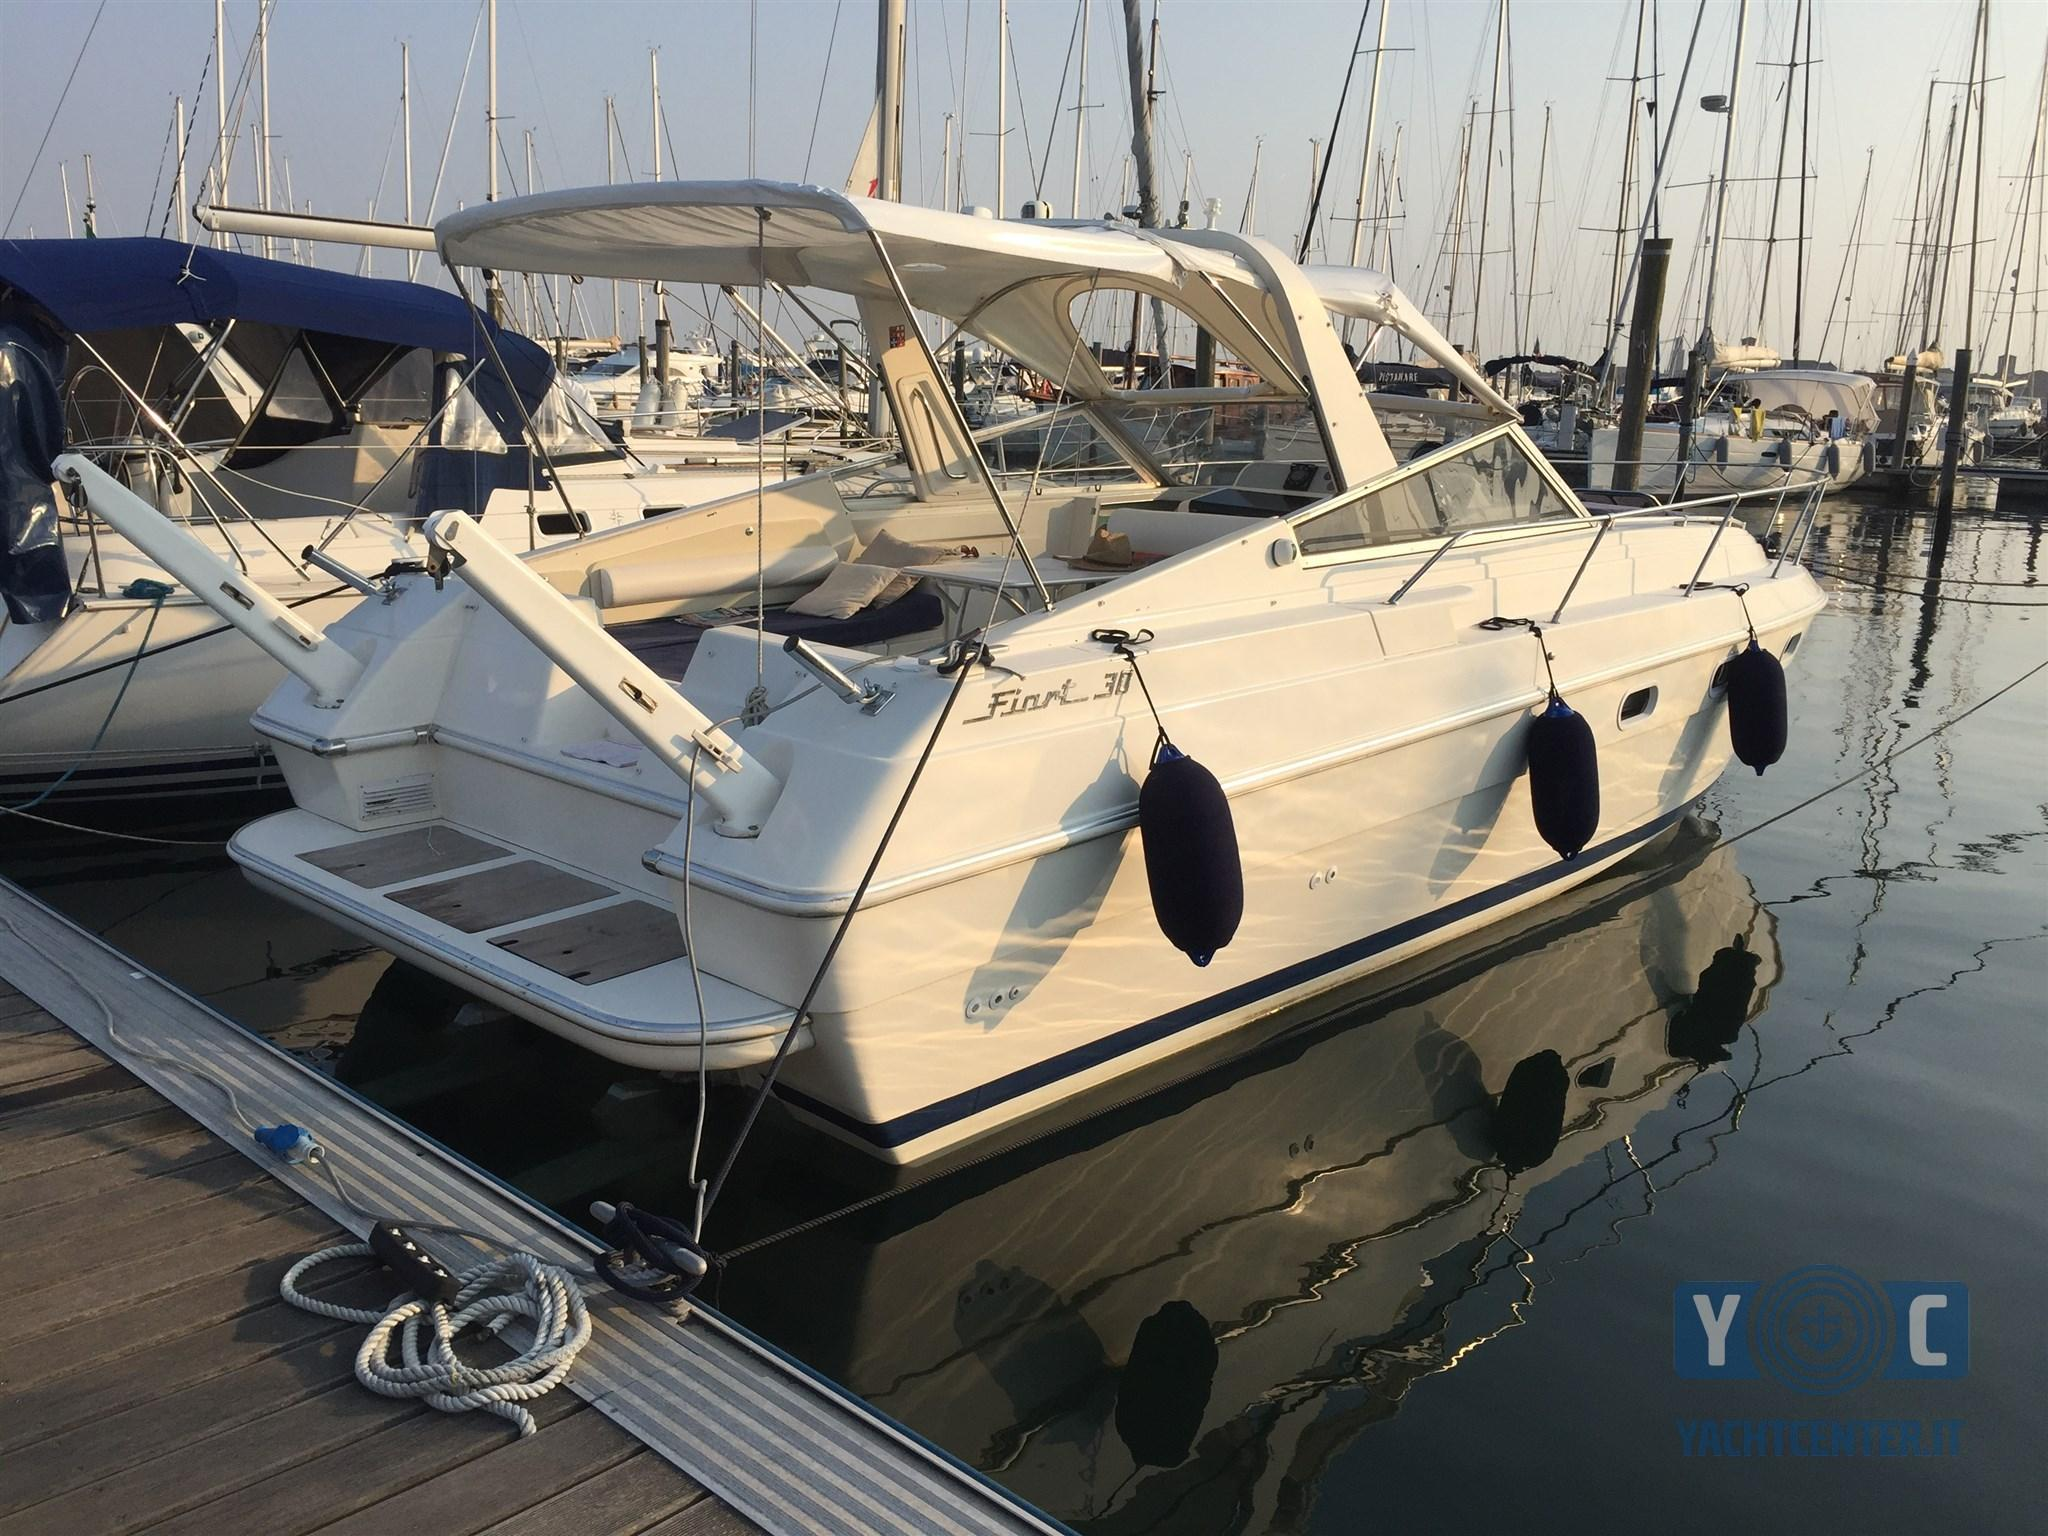 6293851_20170709054605912_1_XLARGE&w=520&h=346&t=1499608073000 search boats for sale yachtworld com  at gsmx.co